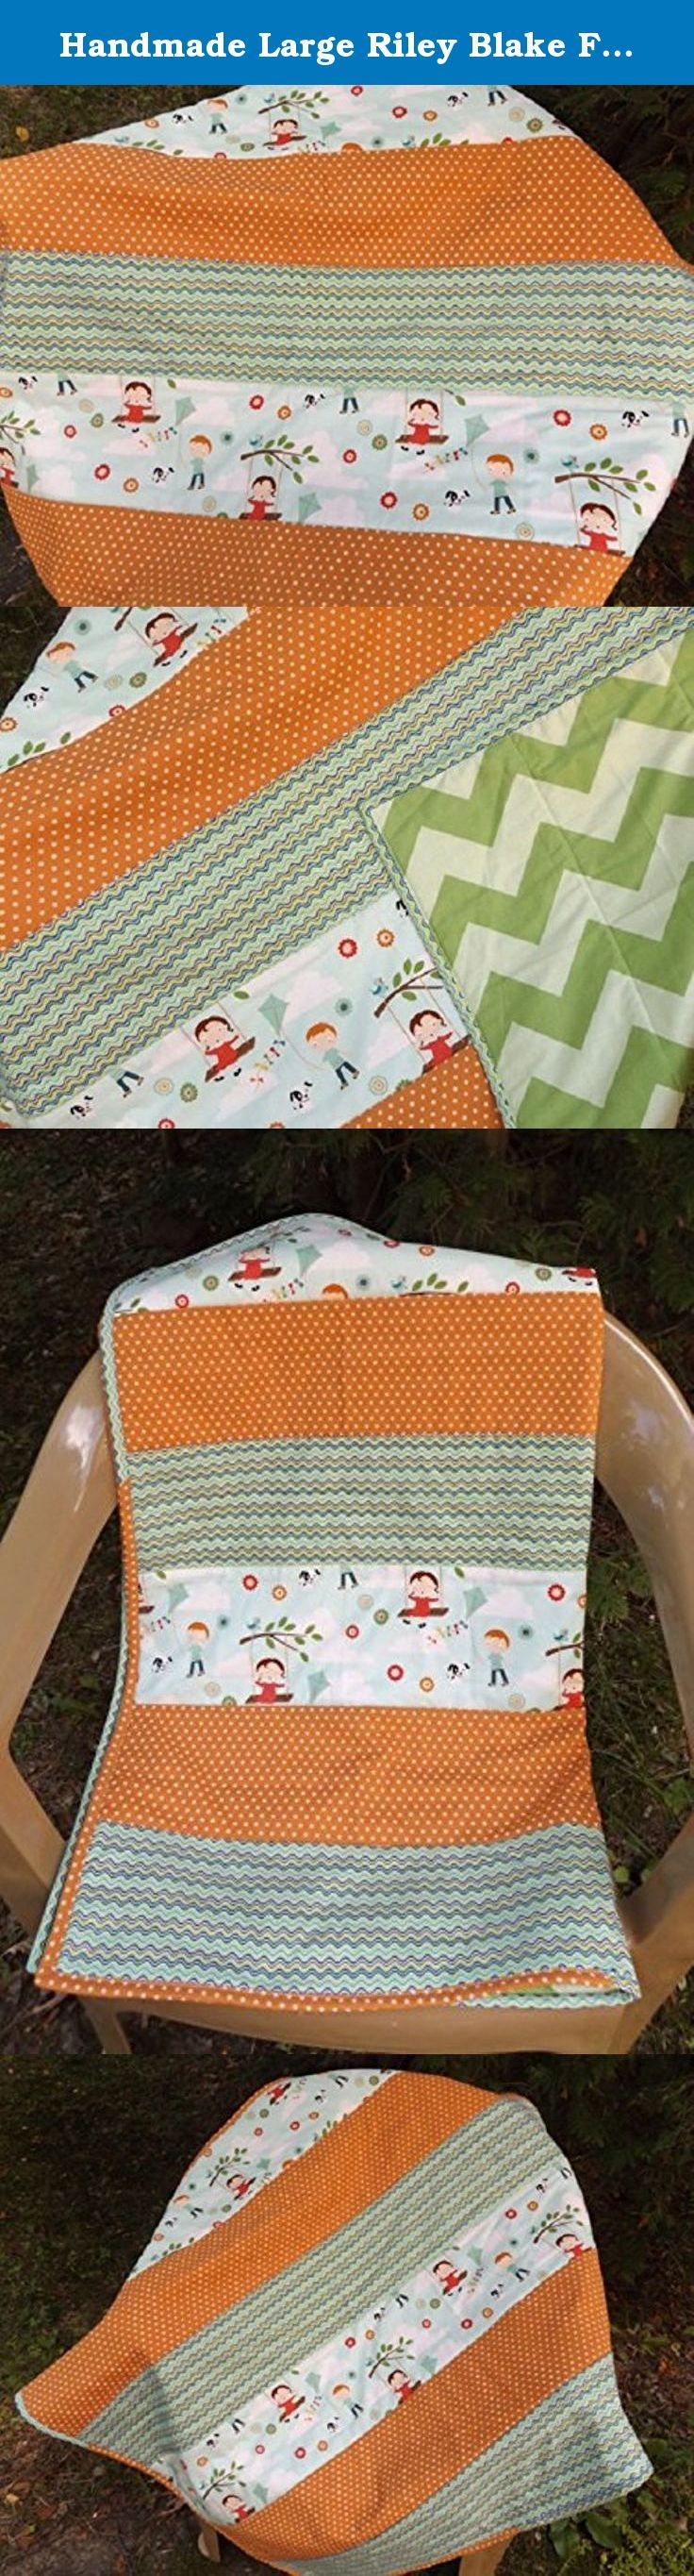 Handmade Large Riley Blake Fly a Kite Strip Crib Quilt - Modern Crib Quilt - Aqua, Green, Orange Strip Quilt. Cotton strip quilted crib quilt in modern designer fabrics using blues, greens, reds and oranges. The feature fabric has an adorable llittle boy and girl print and a beautiful color combination. The backer is a Riley Blake two tone green chevron. This quilt is perfect for your little one's nursery, and is sure to be a favorite. Both the top and backer are high quality designer...